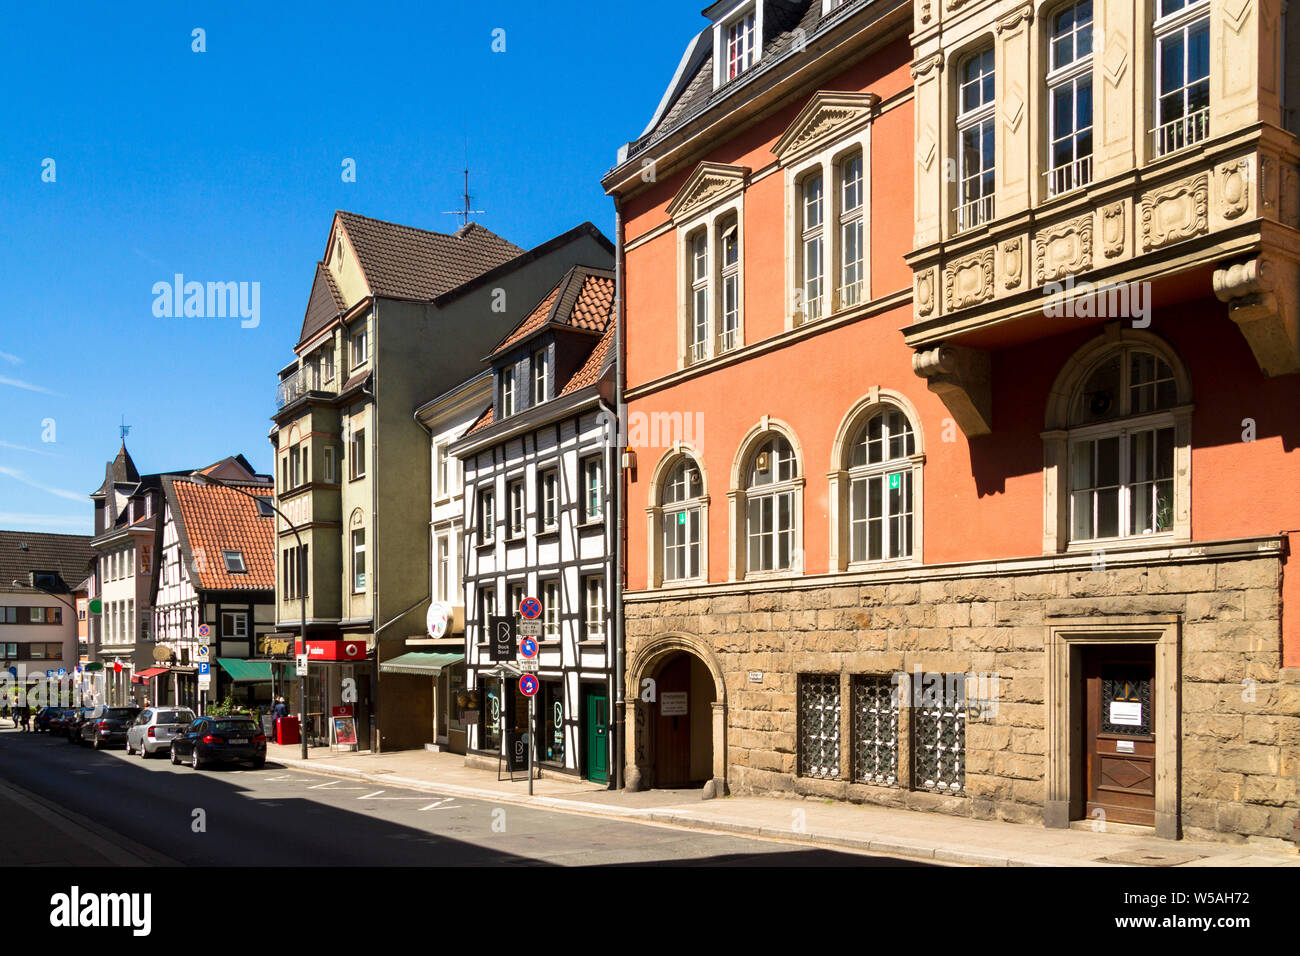 on the right the old town hall at the market square in the district Werden, houses on the Brueckstreet, Essen, Ruhr Area, Germany.  rechts das Alte Ra Stock Photo